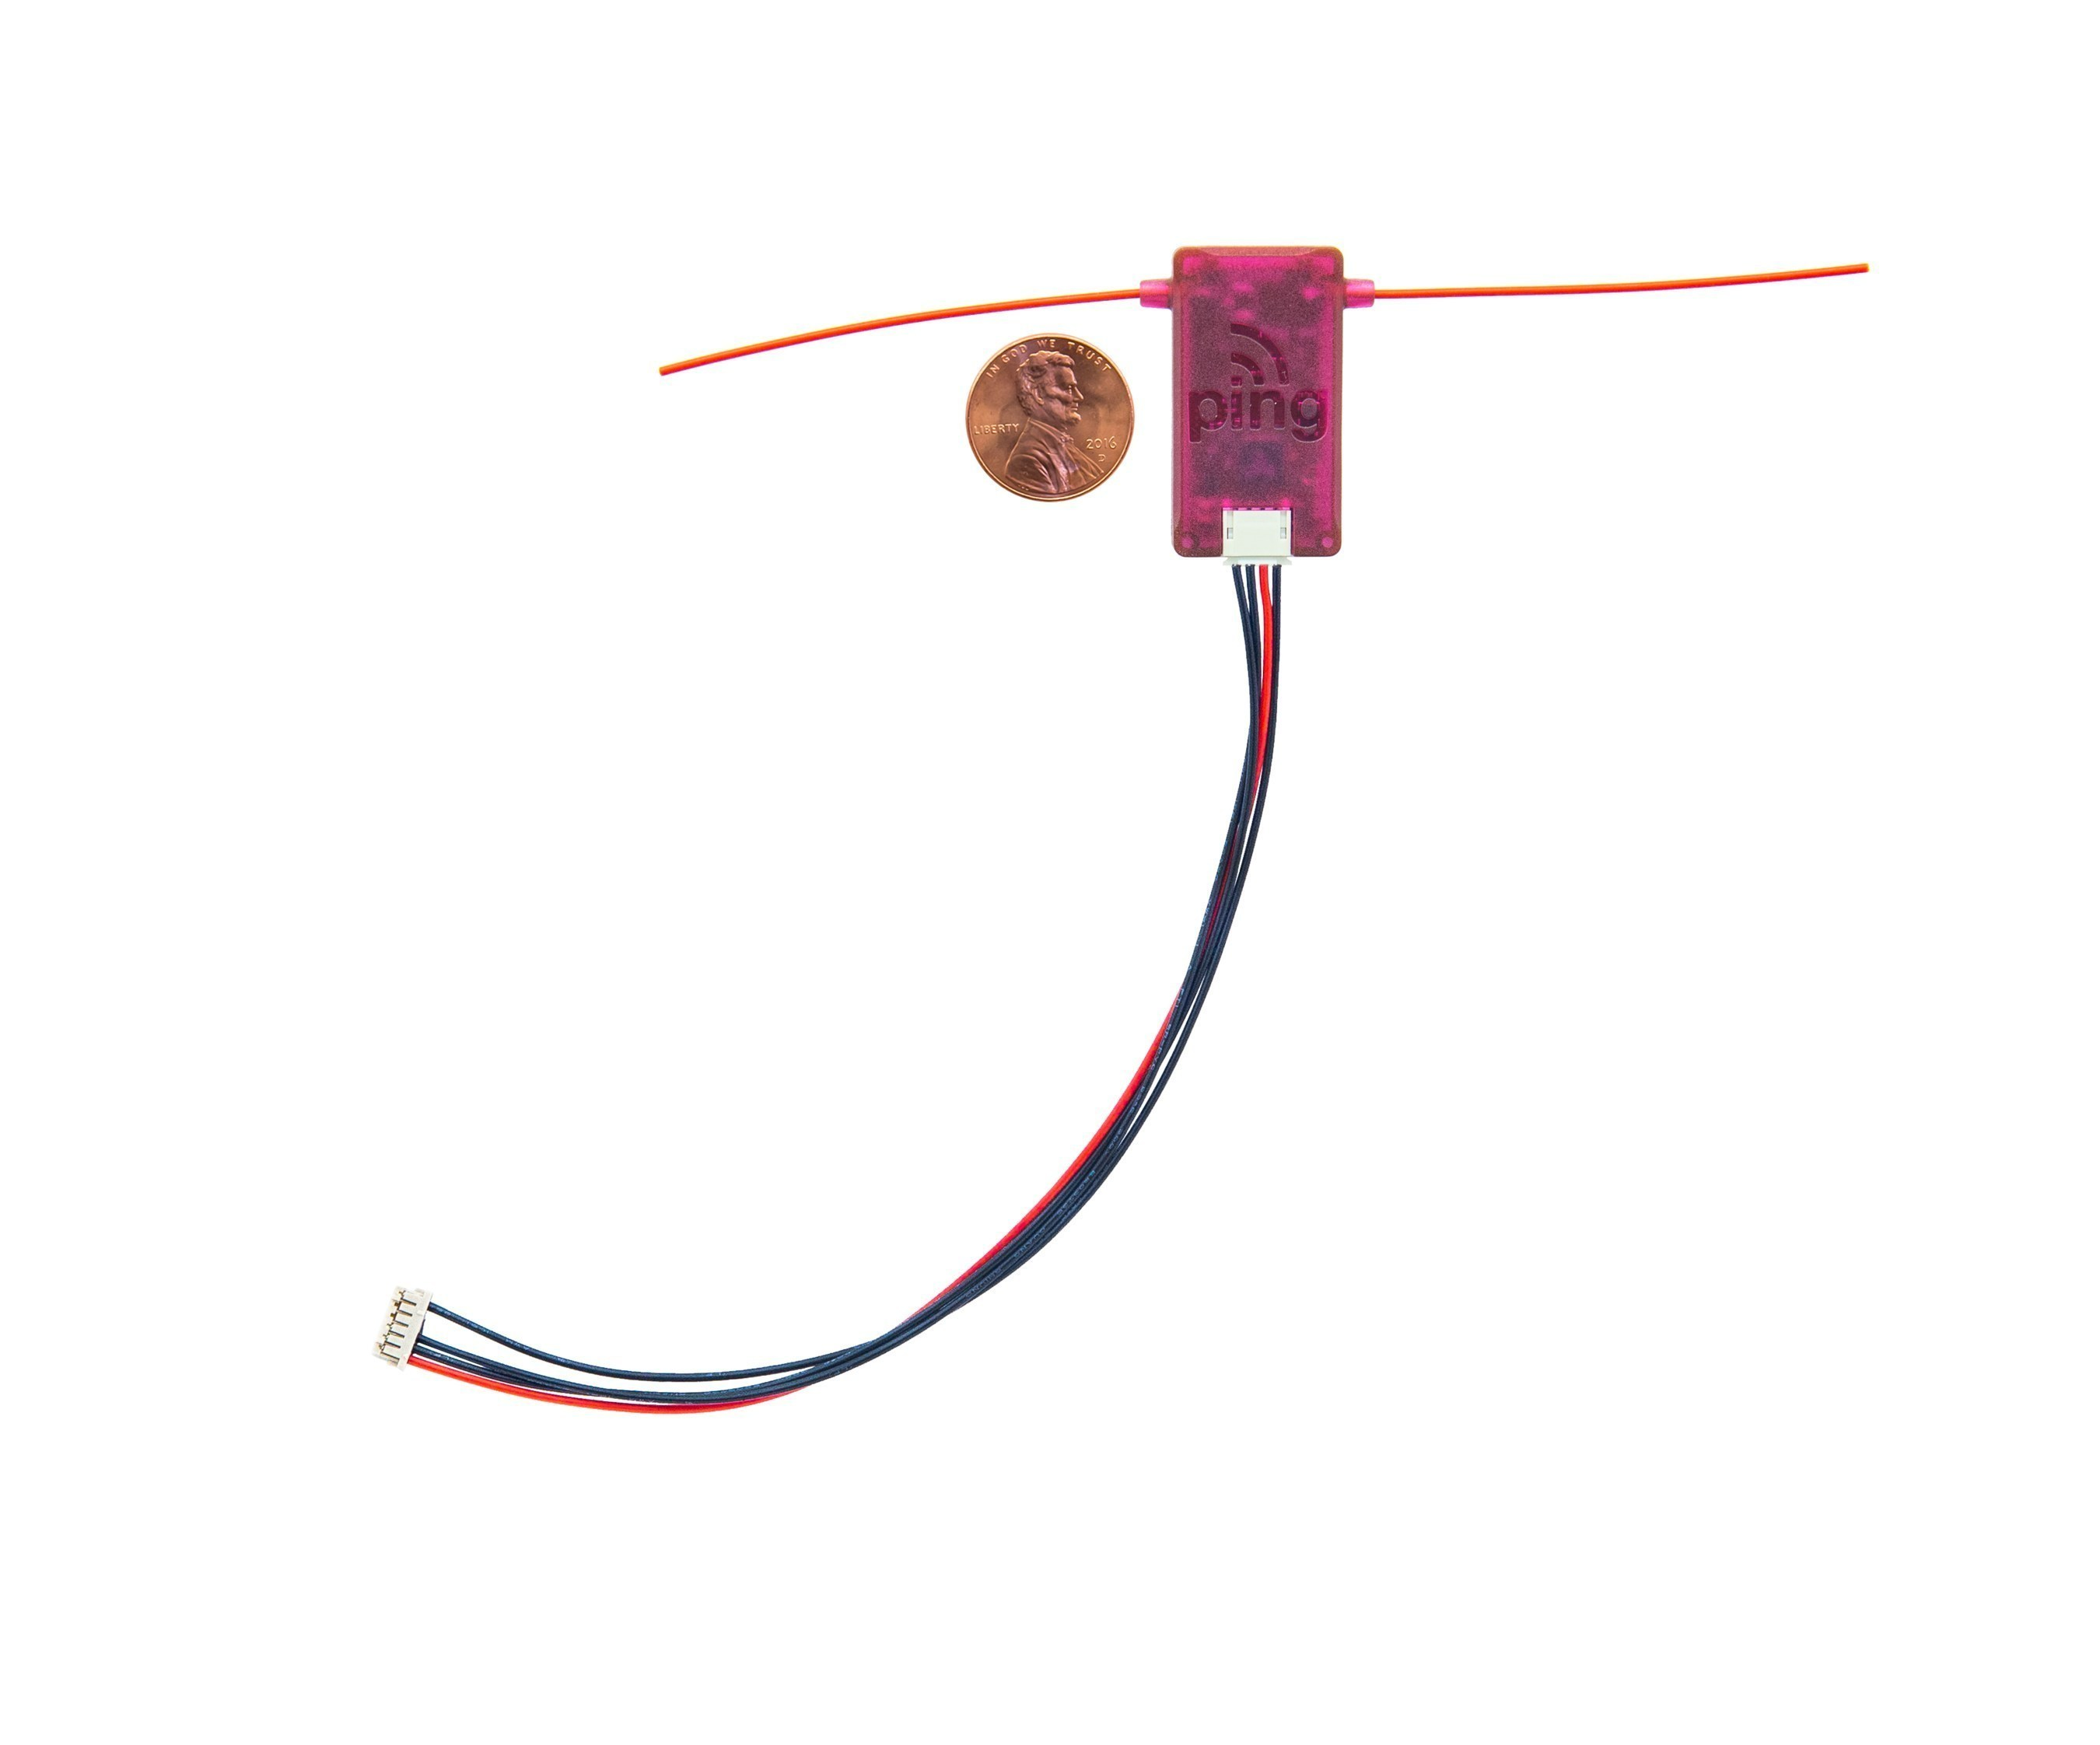 uAvionix introduces 1.5 gram ADS-B receiver for use in small drone collision avoidance systems